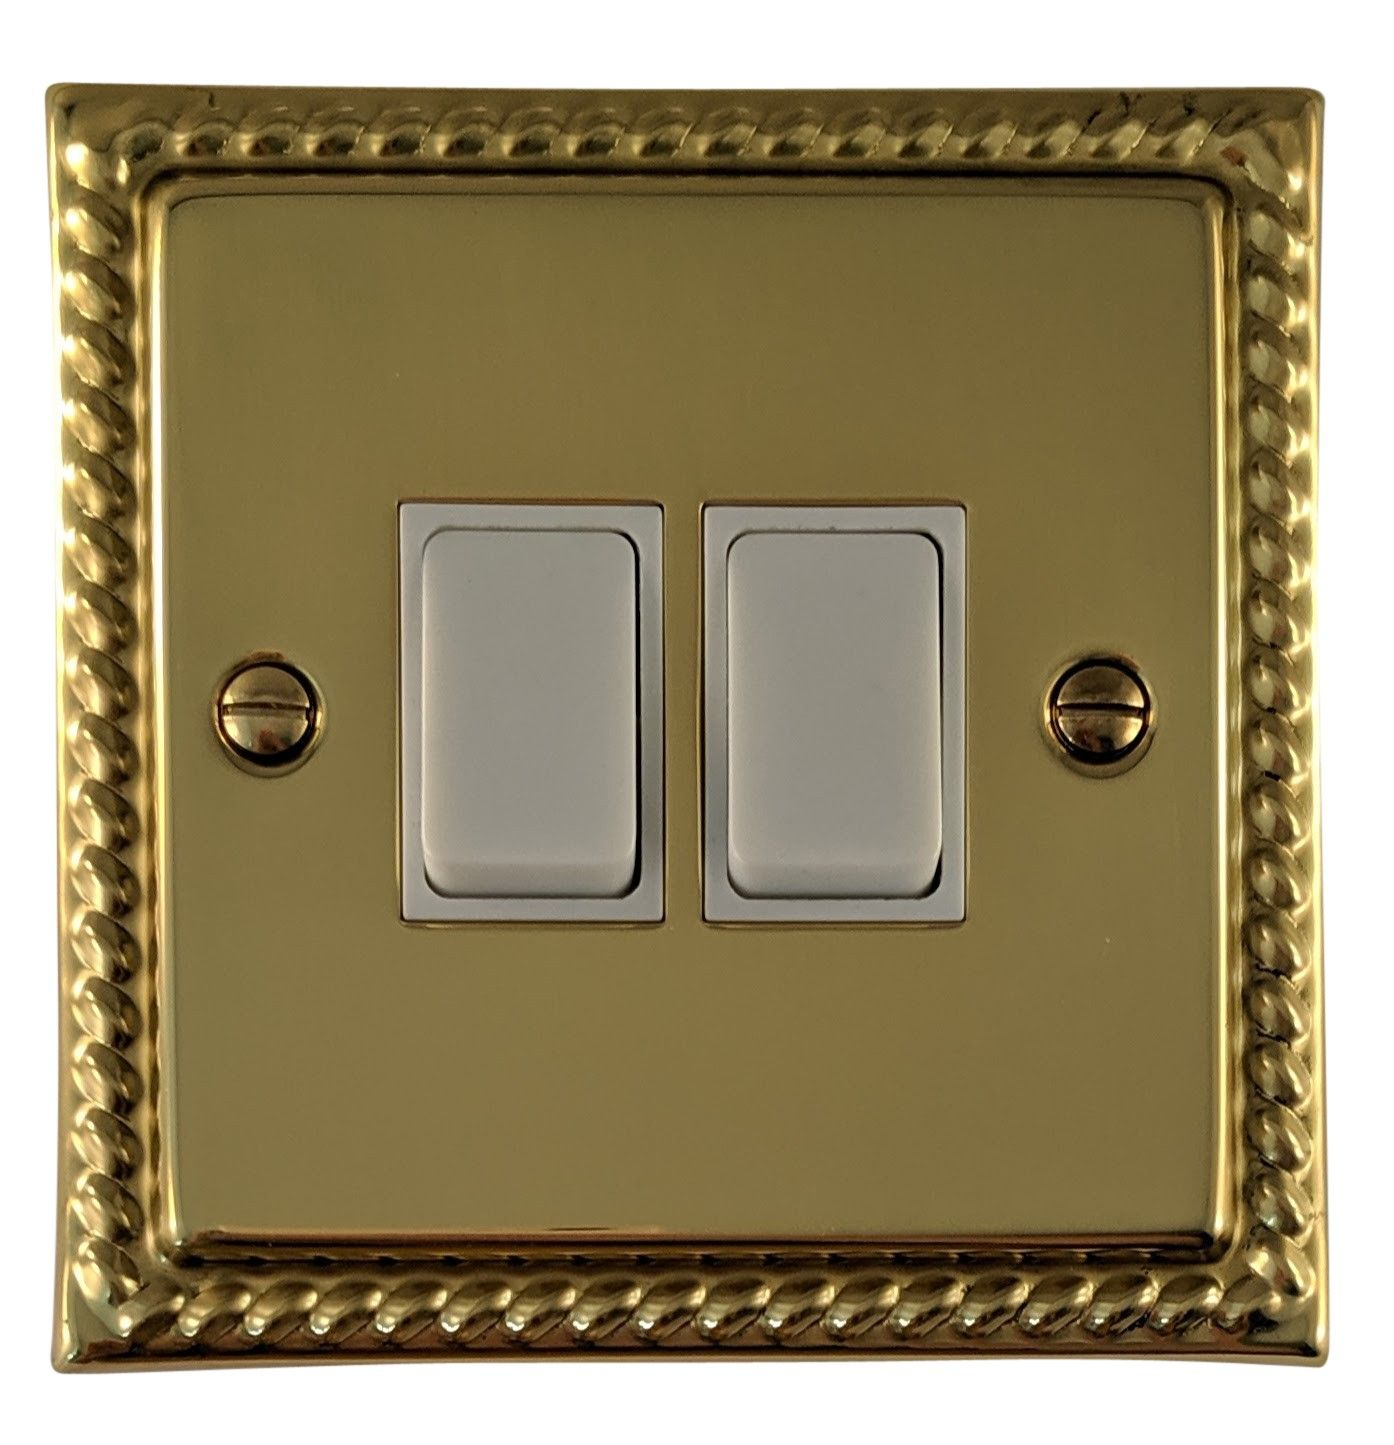 G&H MB2W Monarch Roped Polished Brass 2 Gang 1 or 2 Way Rocker Light Switch